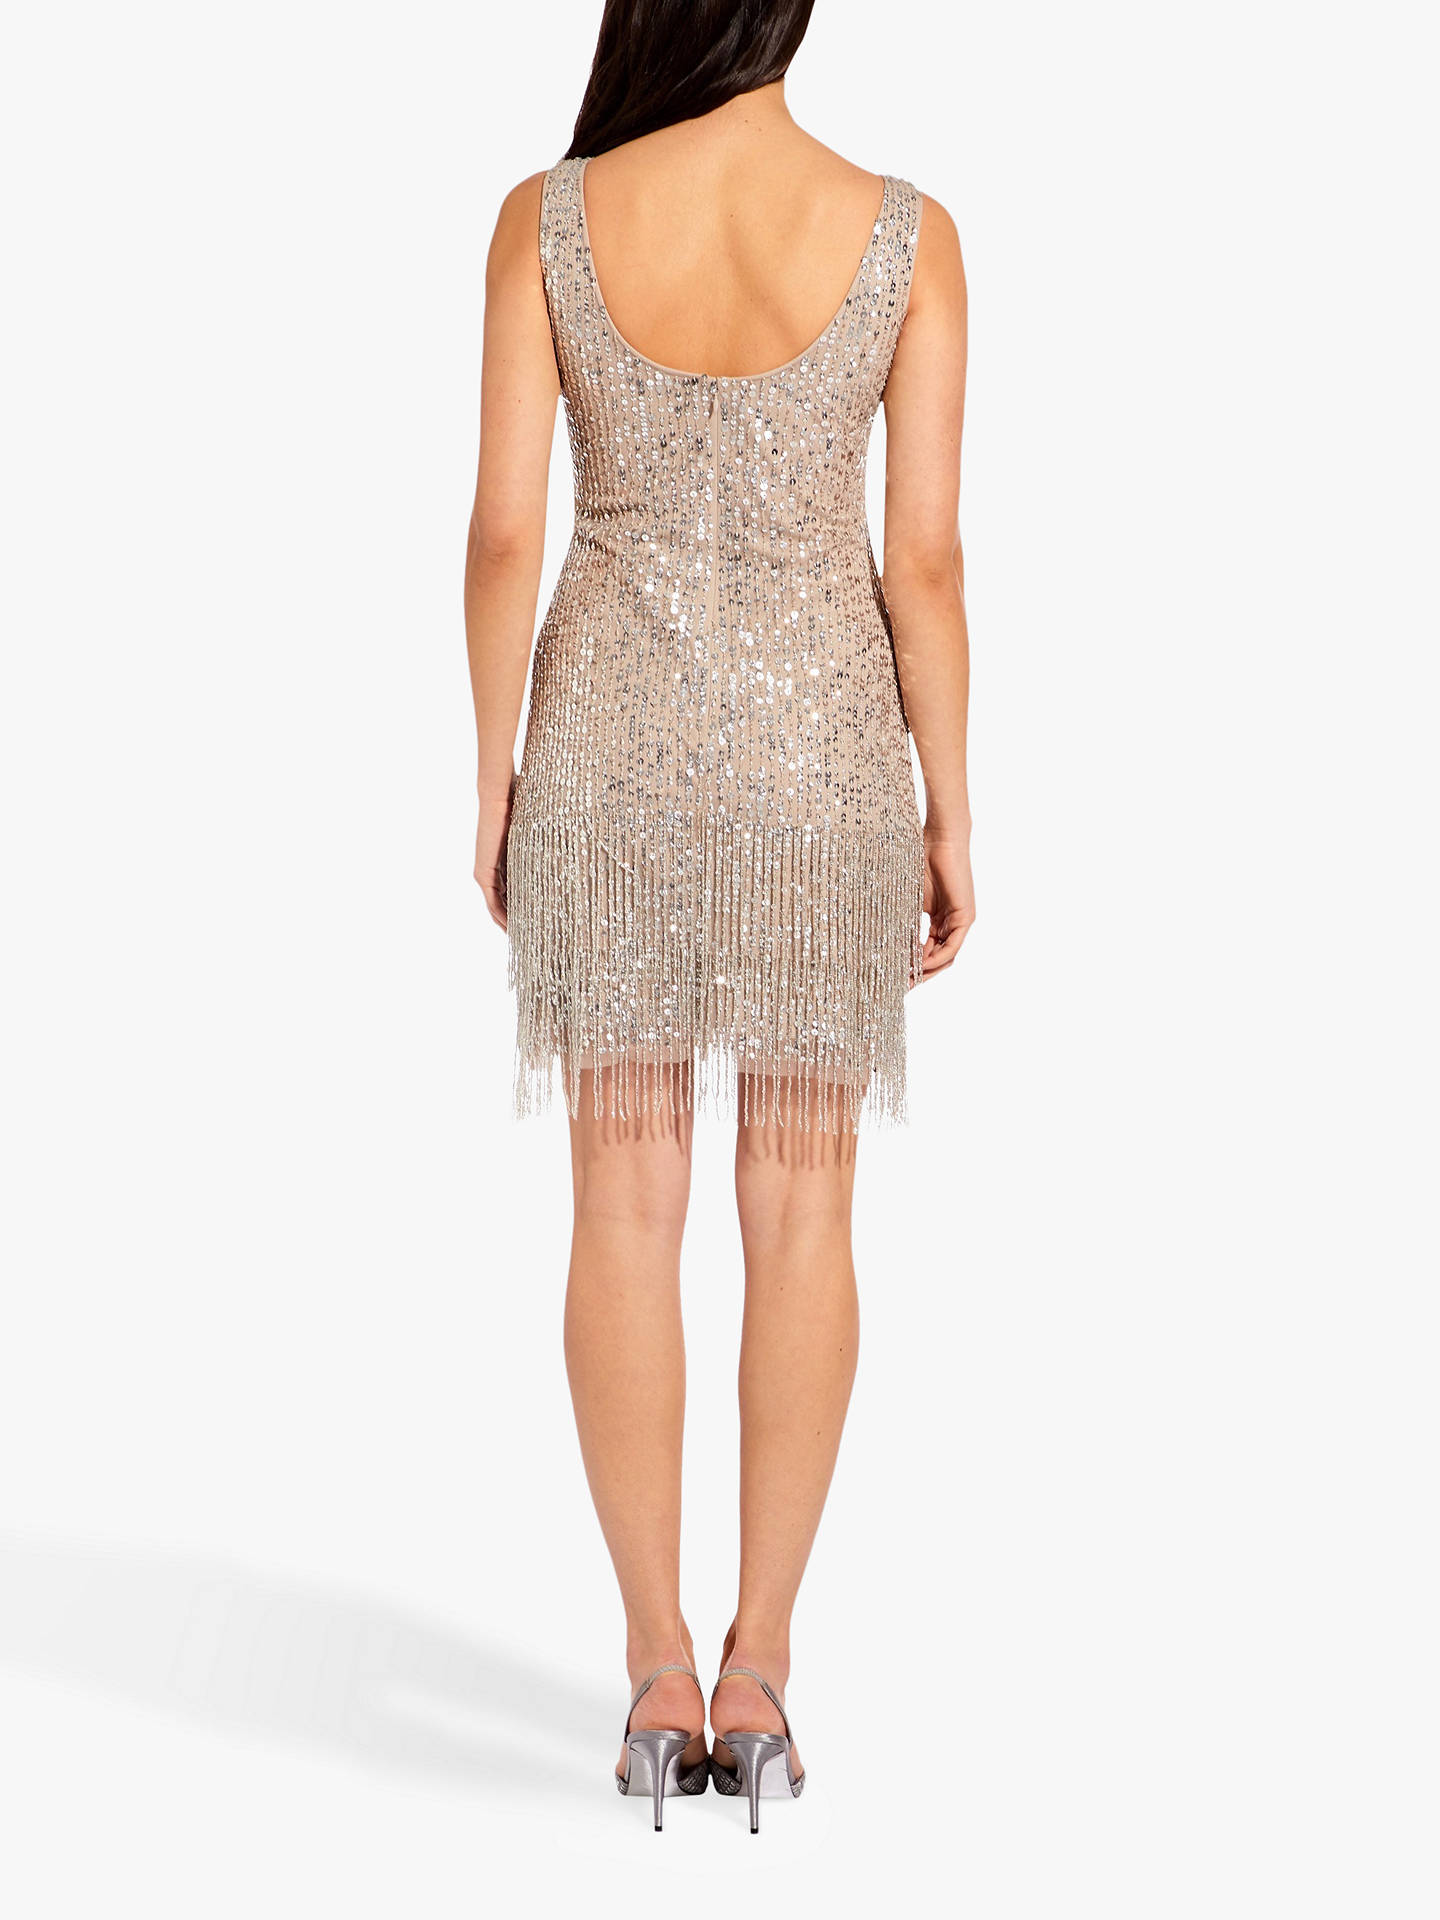 Buy Adrianna Papell Beaded Short Dress, Silver, 6 Online at johnlewis.com